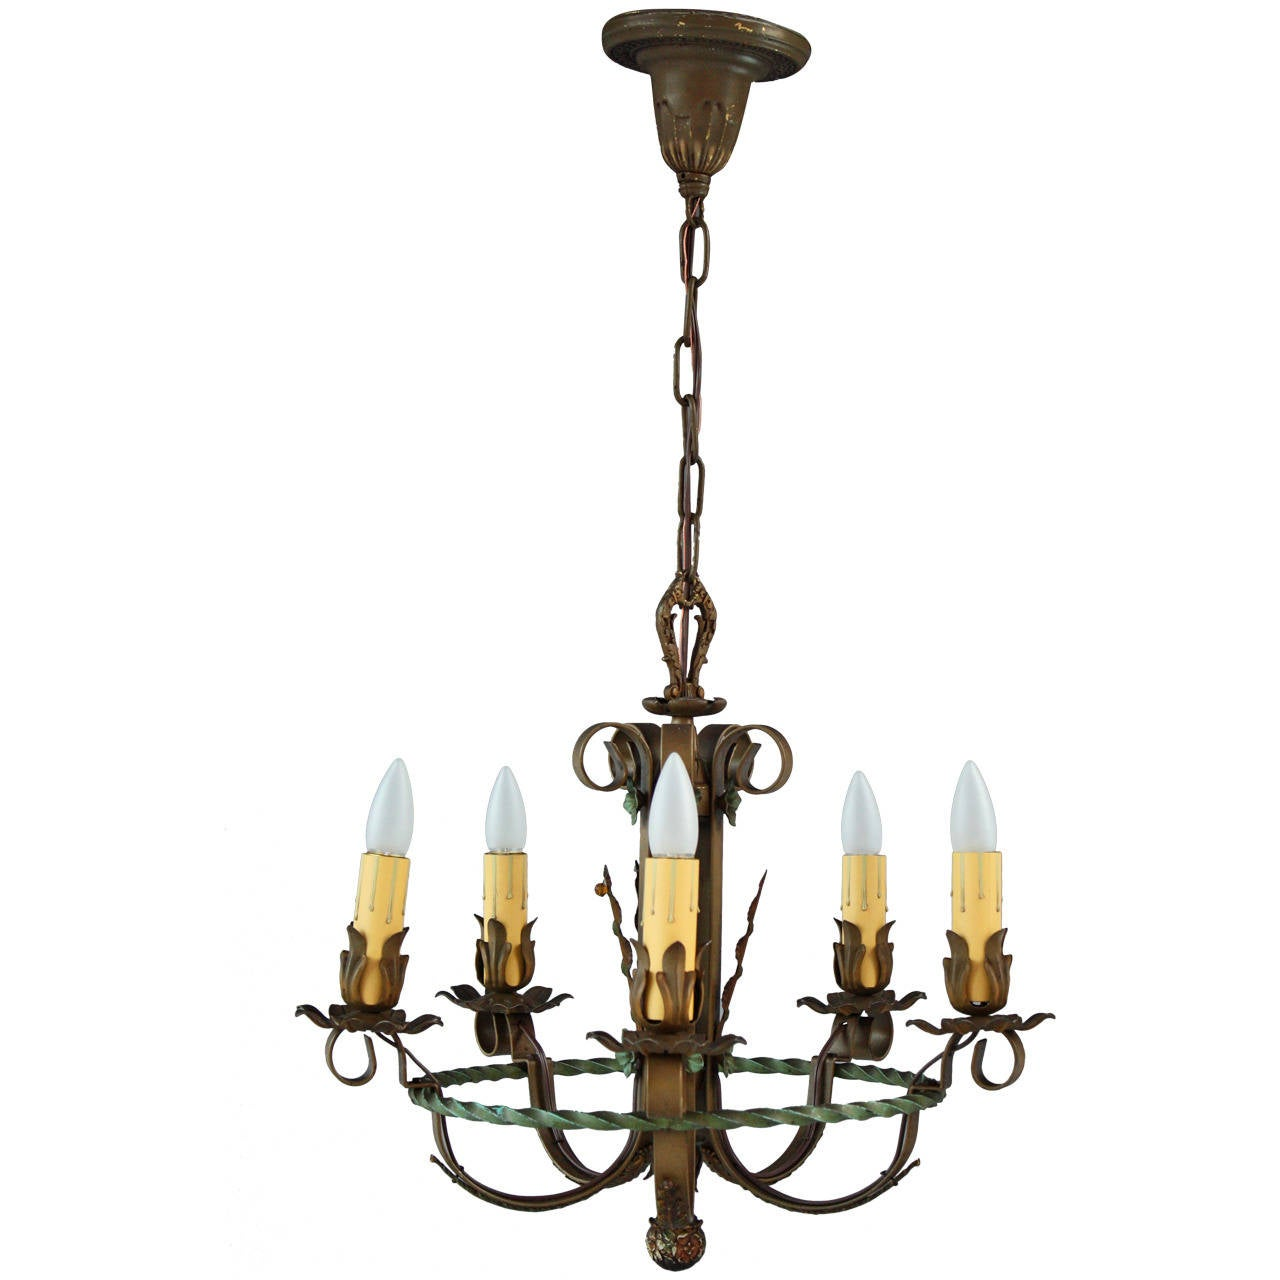 1920s spanish revival chandelier with acanthus at 1stdibs for Spanish revival lighting